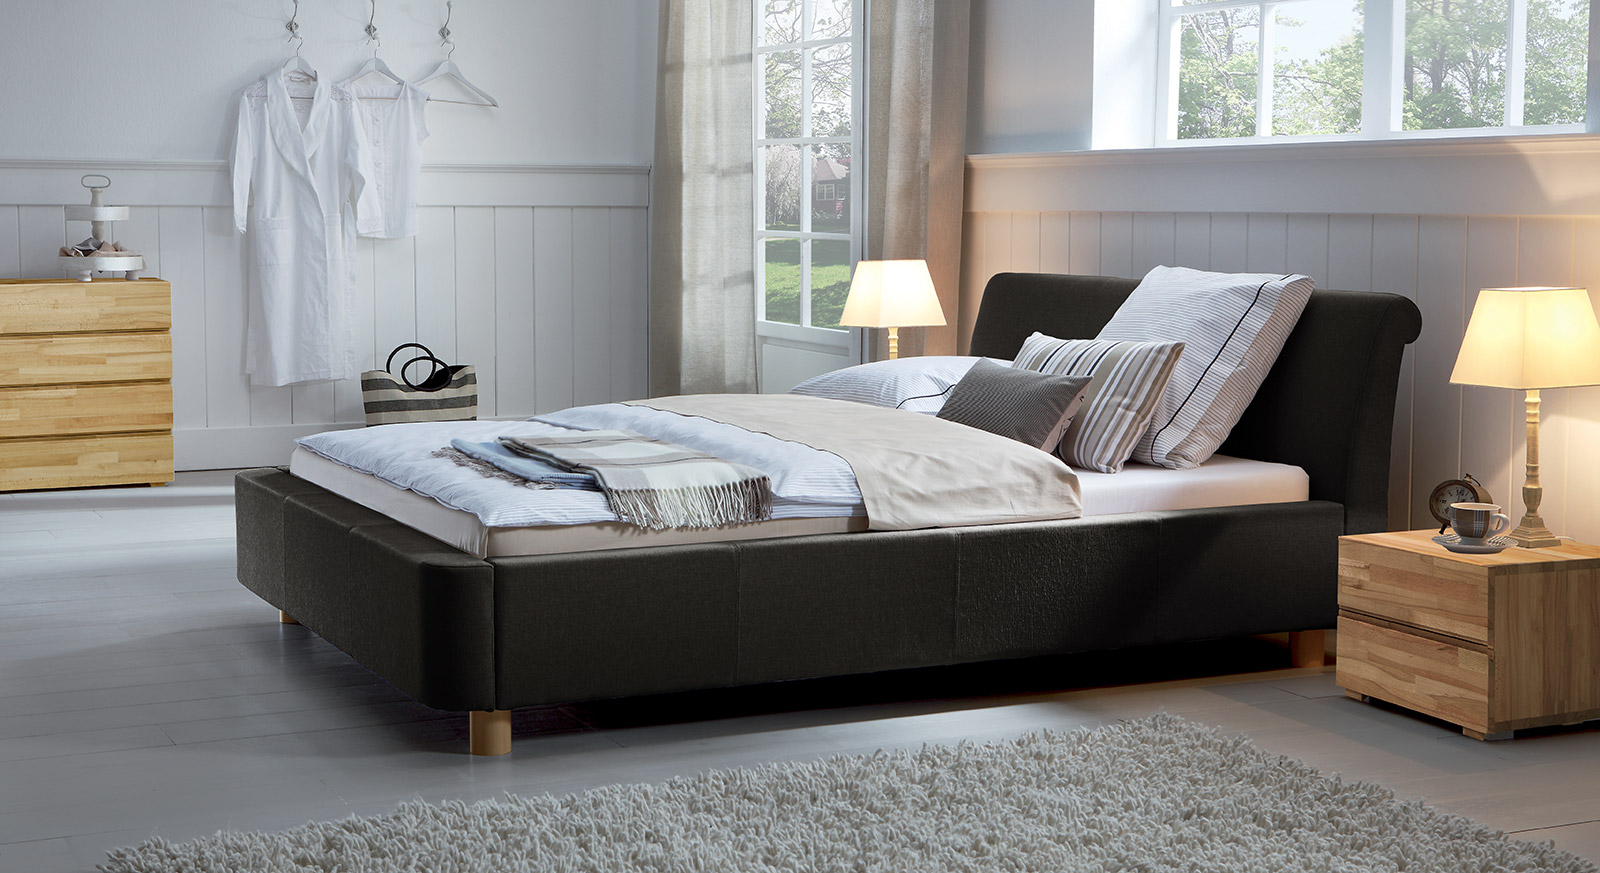 stoffbett als doppelbett z b in 200x220 erh ltlich andorra. Black Bedroom Furniture Sets. Home Design Ideas